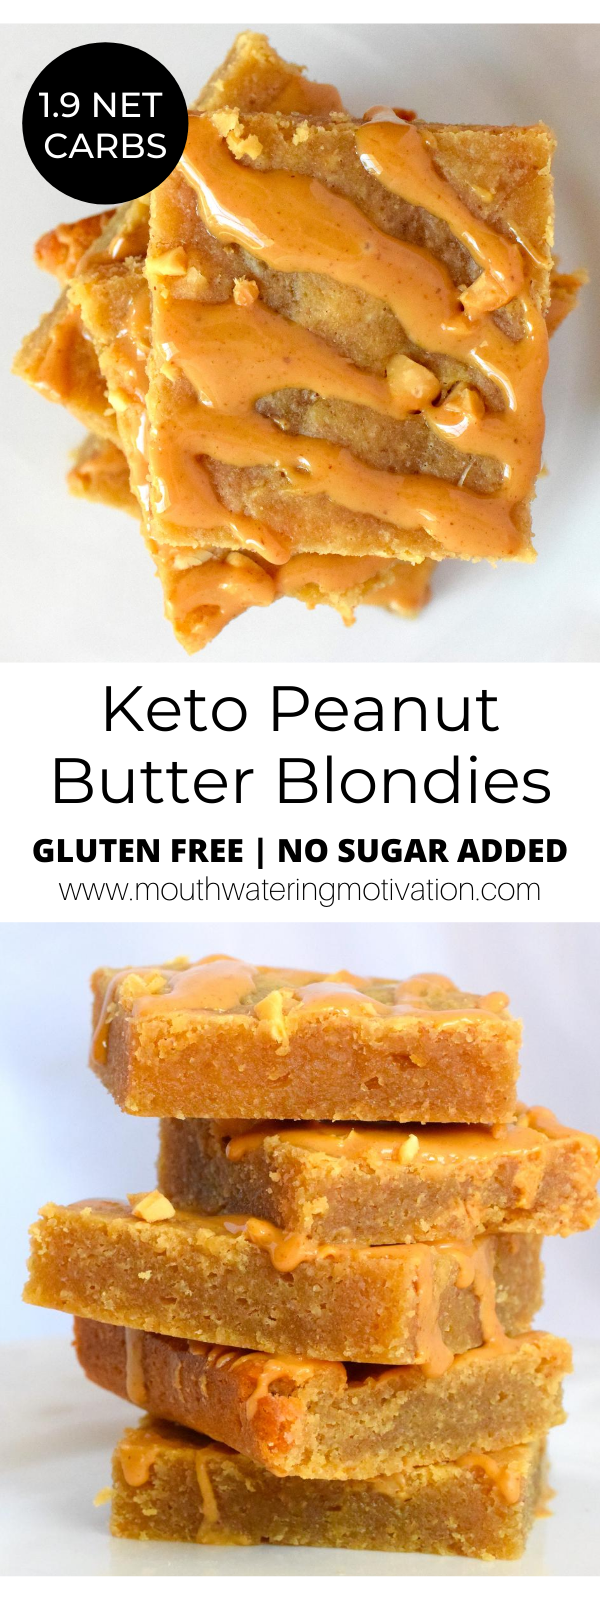 Low Carb Keto Peanut Butter Blondies